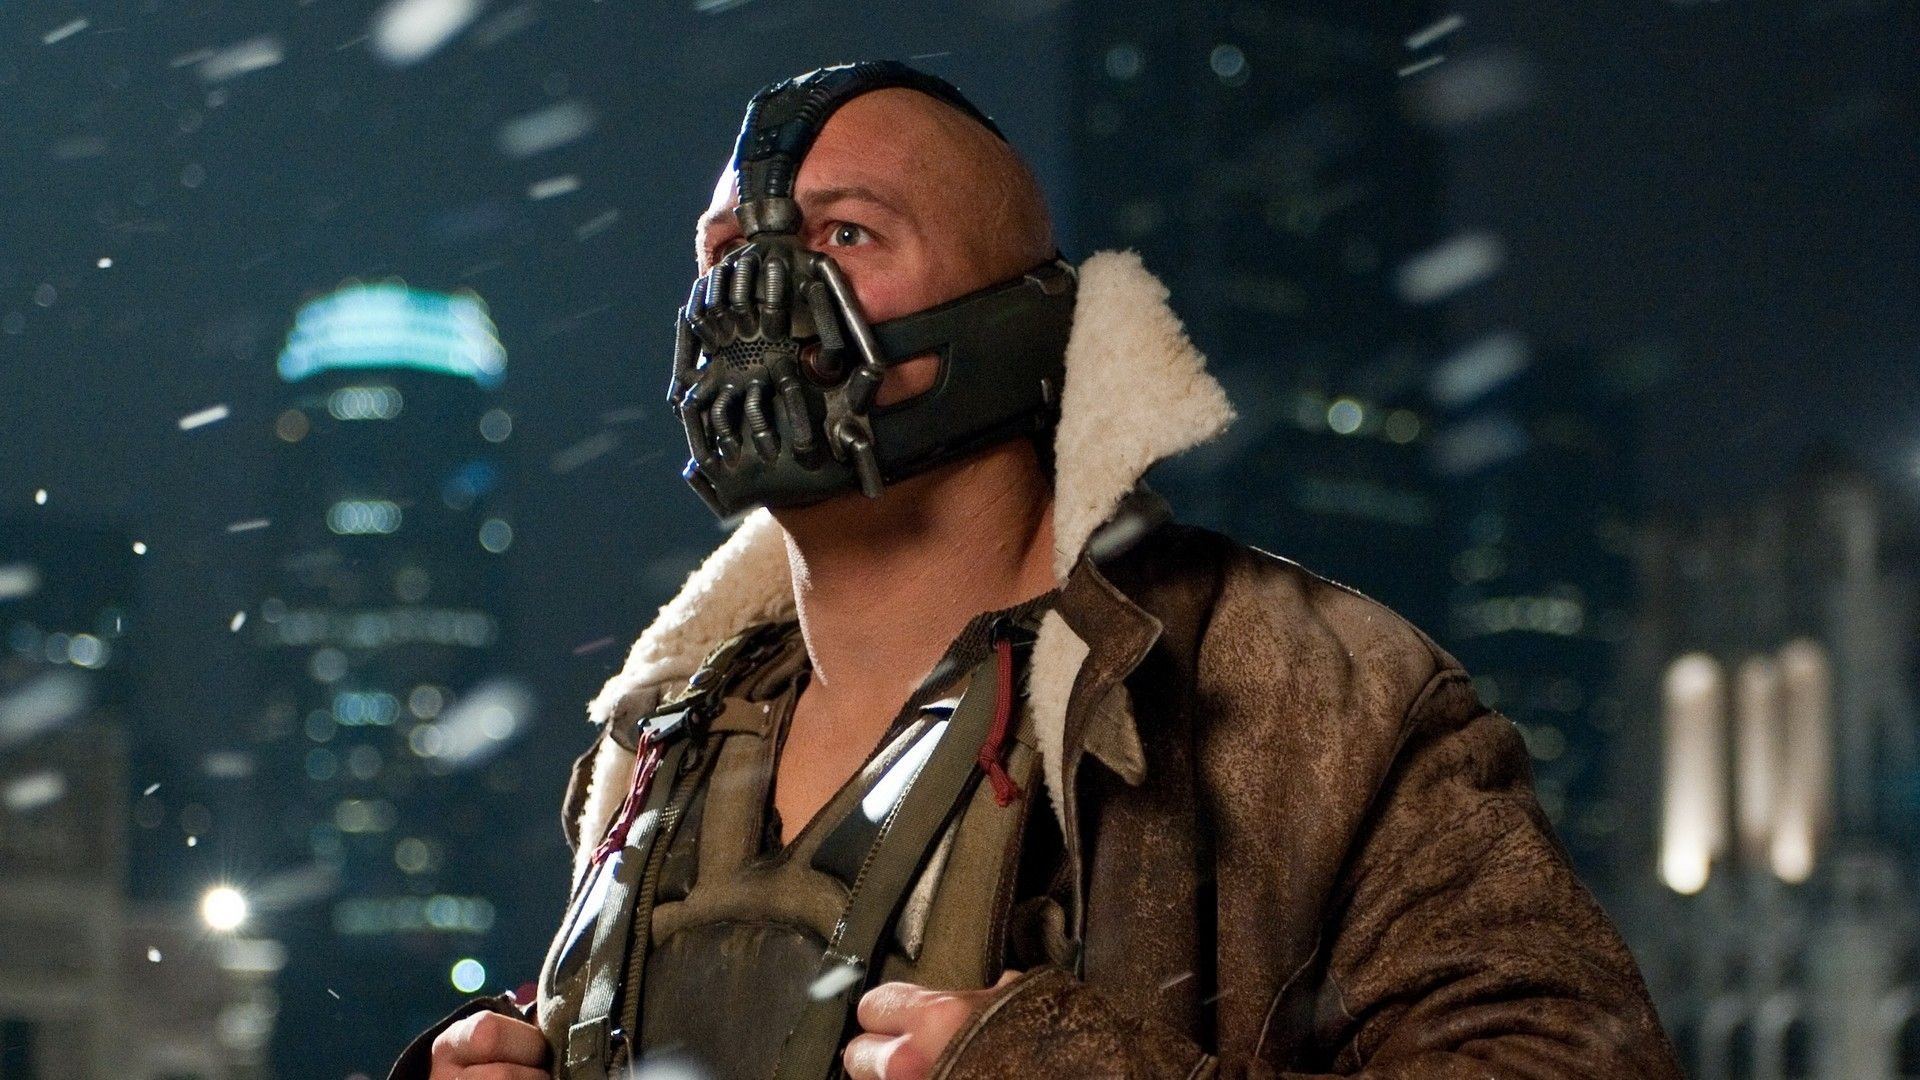 Gotham S Bane Actor Defends Costume And Hints At Tom Hardy Inspiration For Voice